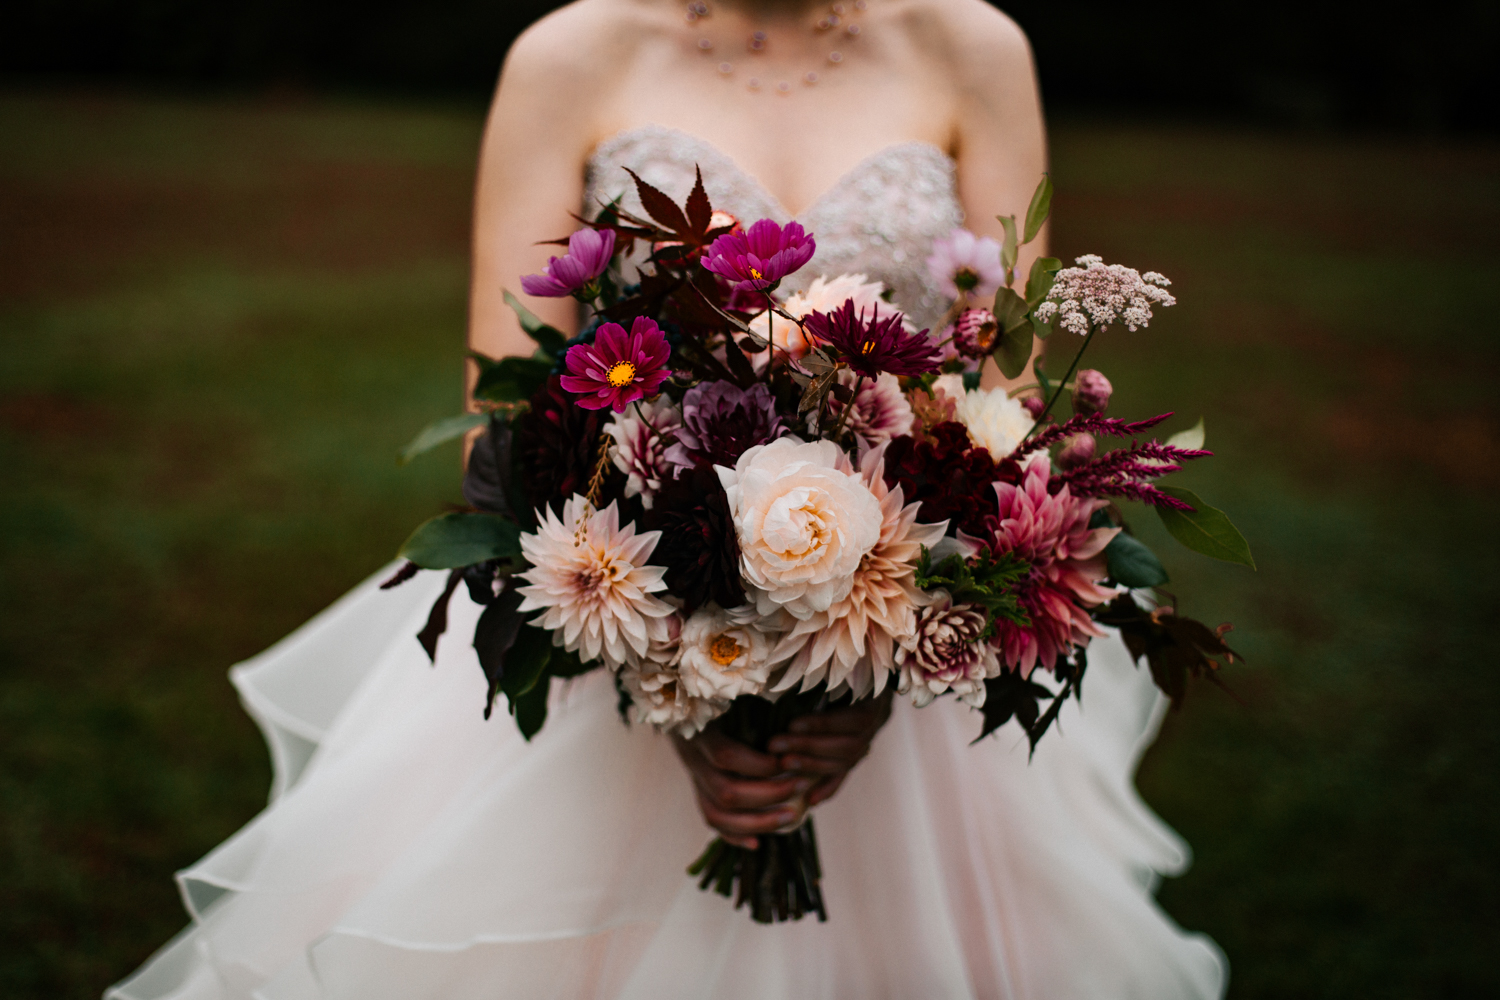 autumn-wedding-bouquet-bride-october-elizabeth-park-wedding-boston-photographer-connecticut-new-england.jpg